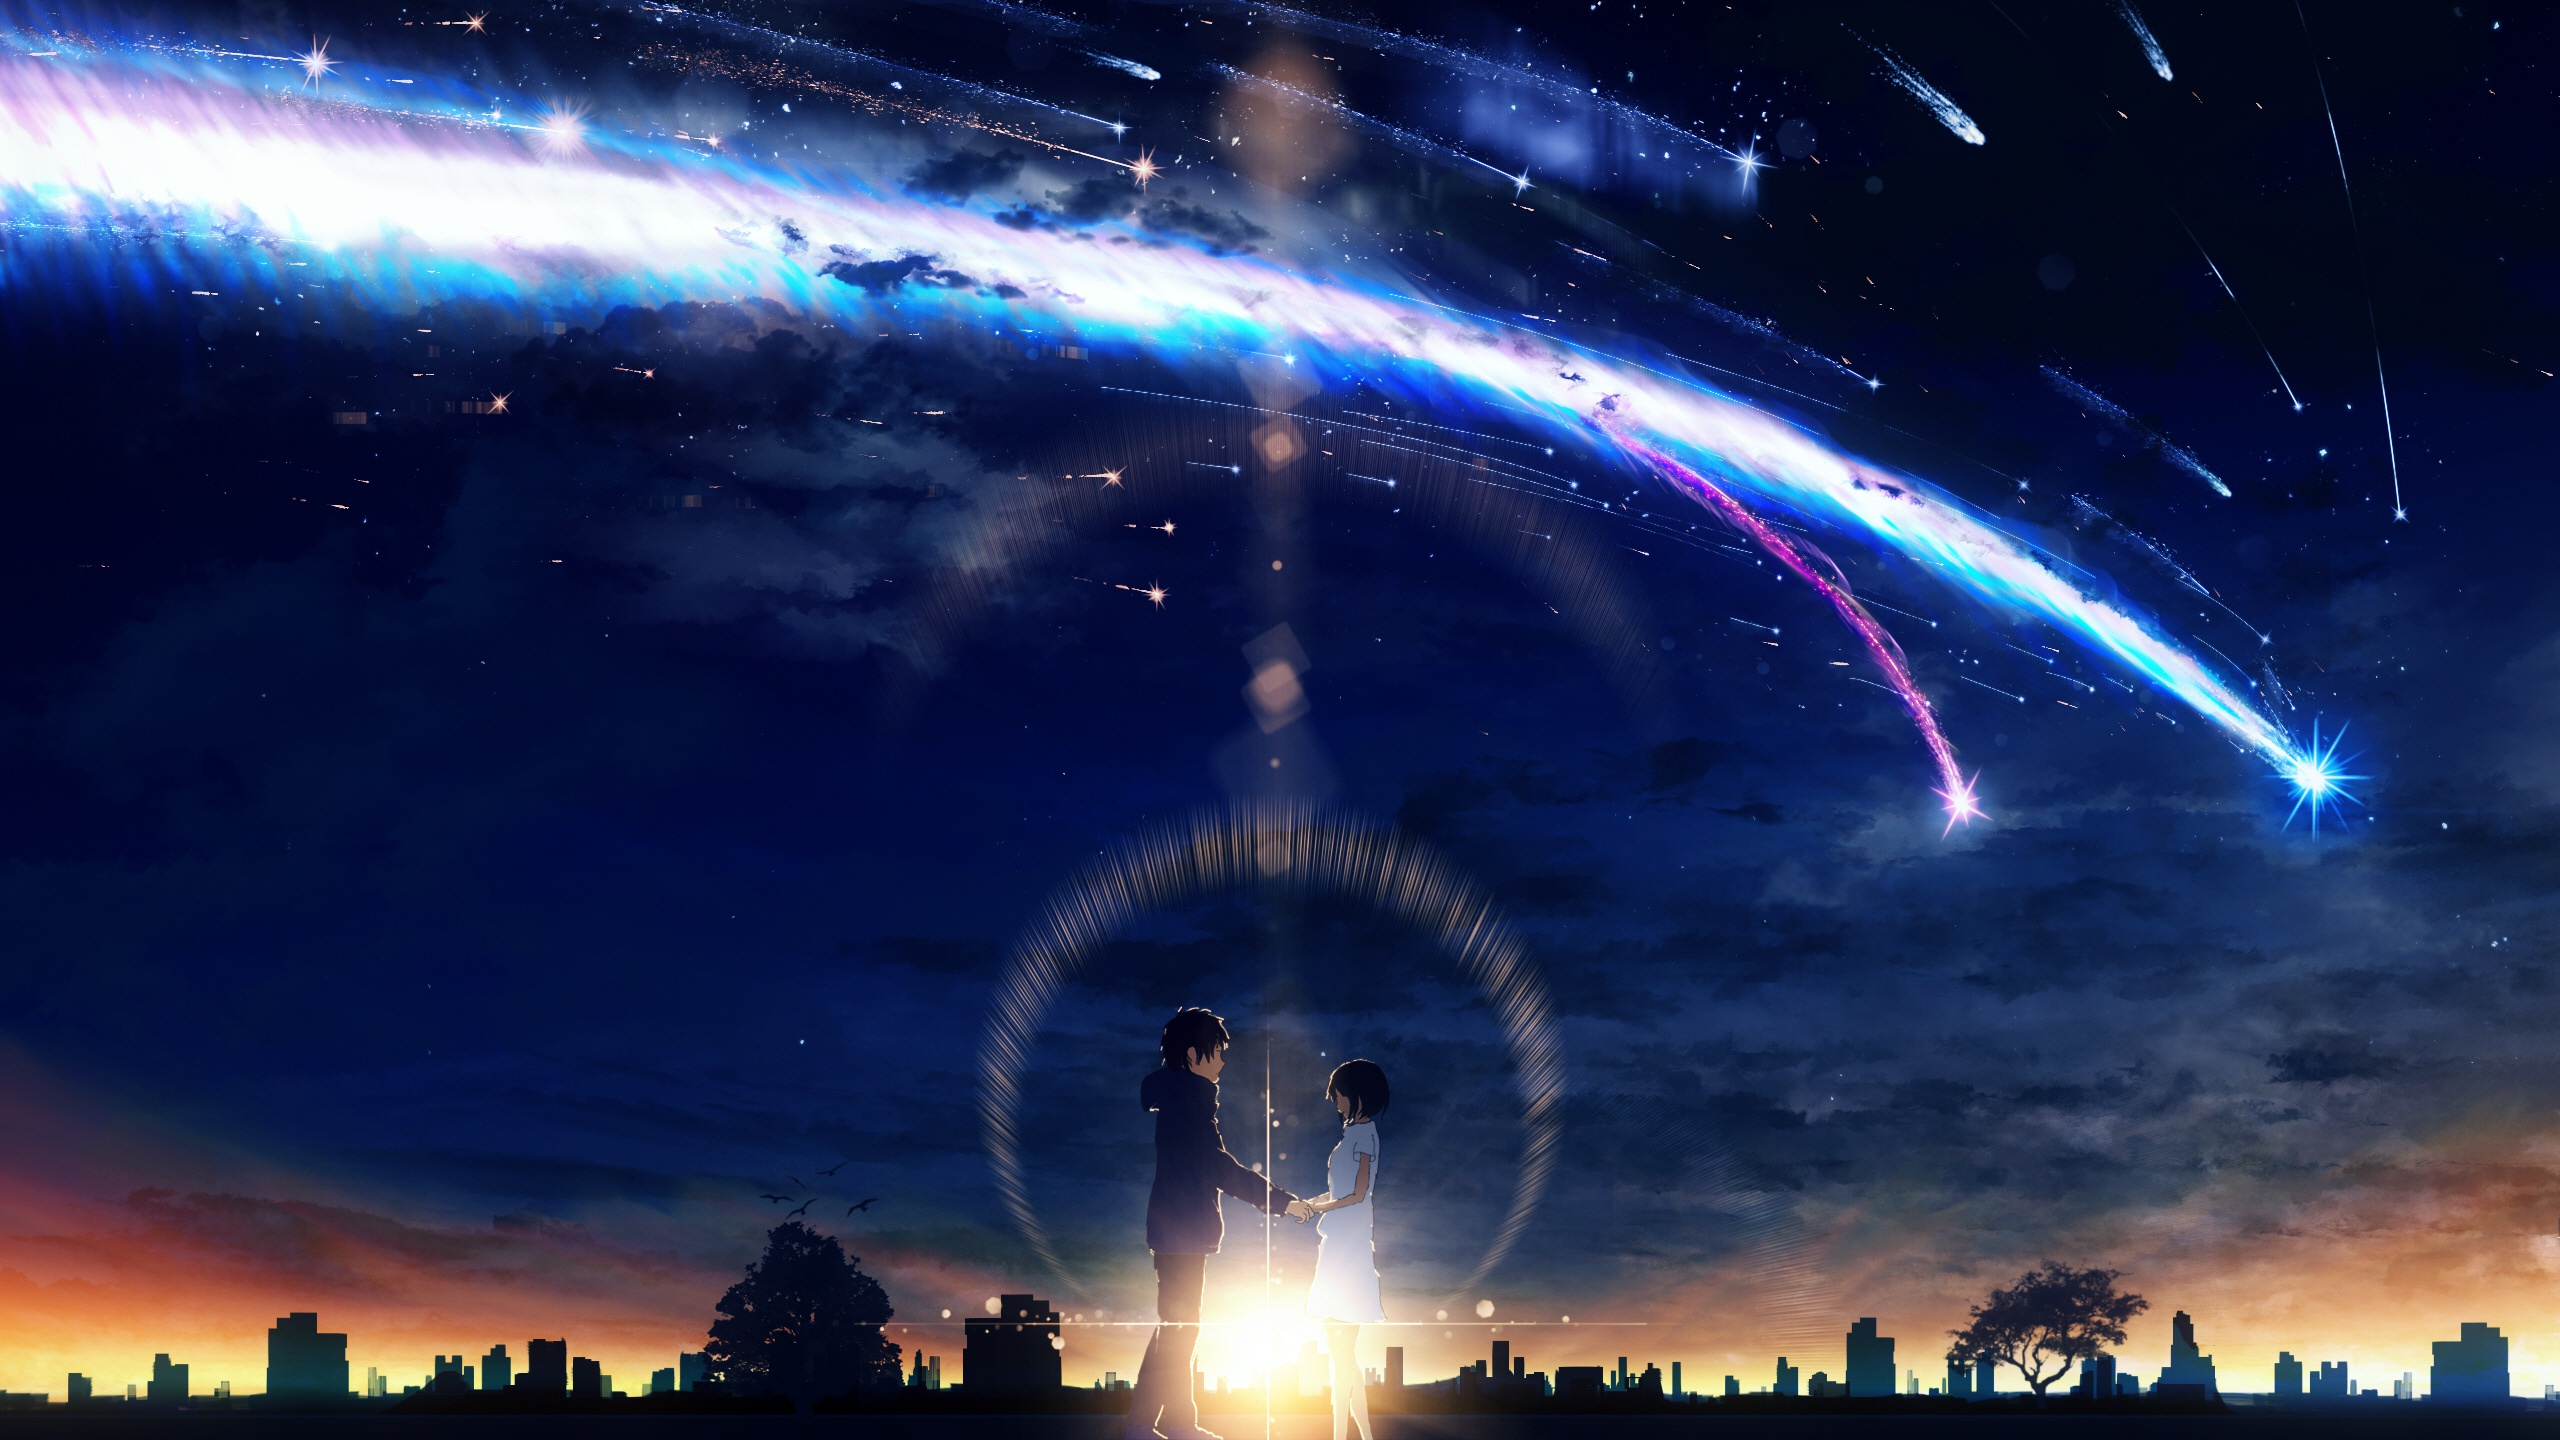 Your Name Anime Download Posted By Christopher Sellers